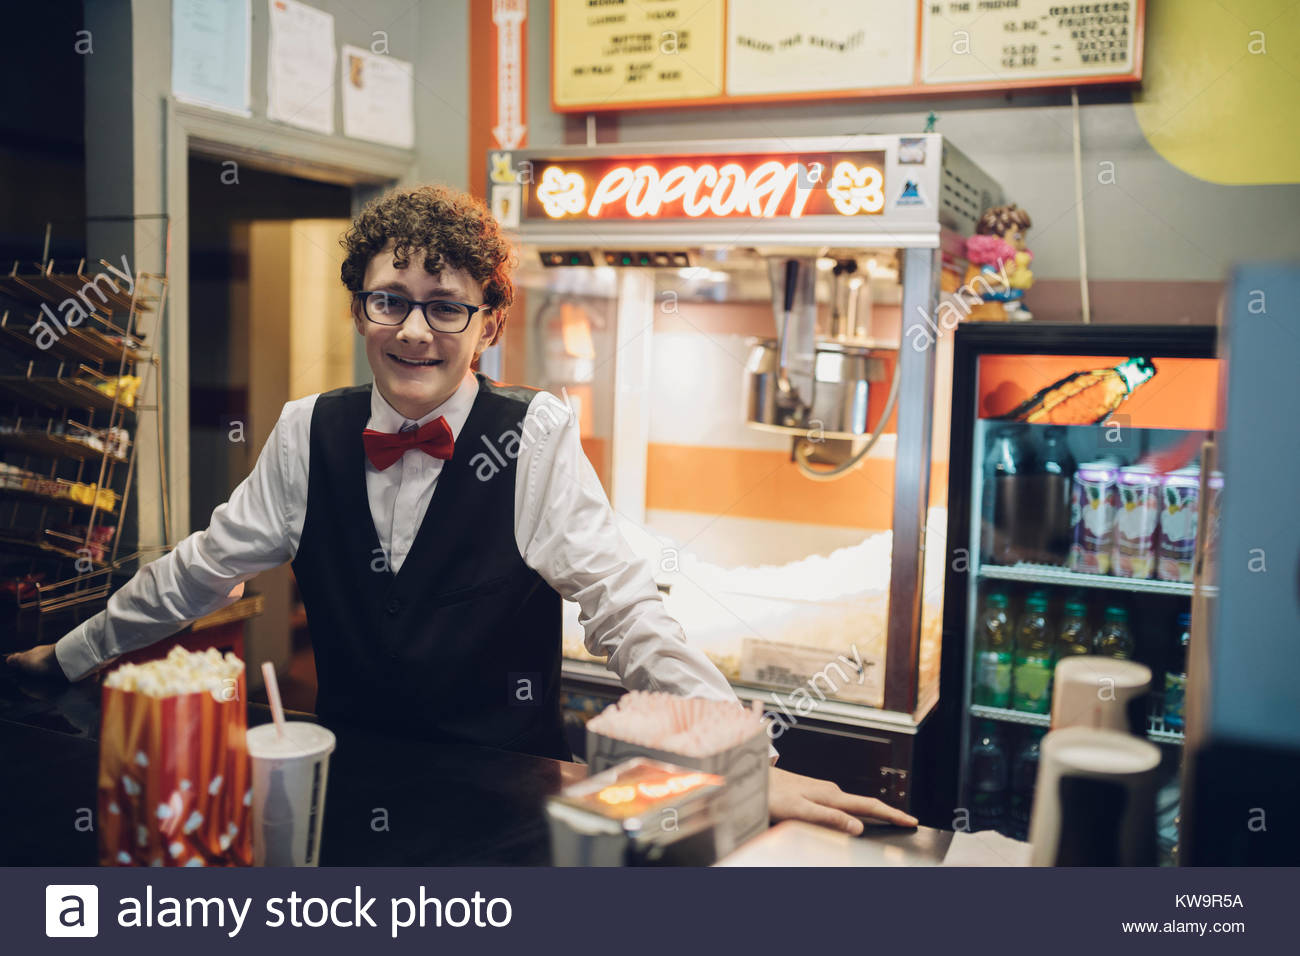 Portrait smiling,confident Caucasian tween boy working at refreshments concession stand in movie theater - Stock Image